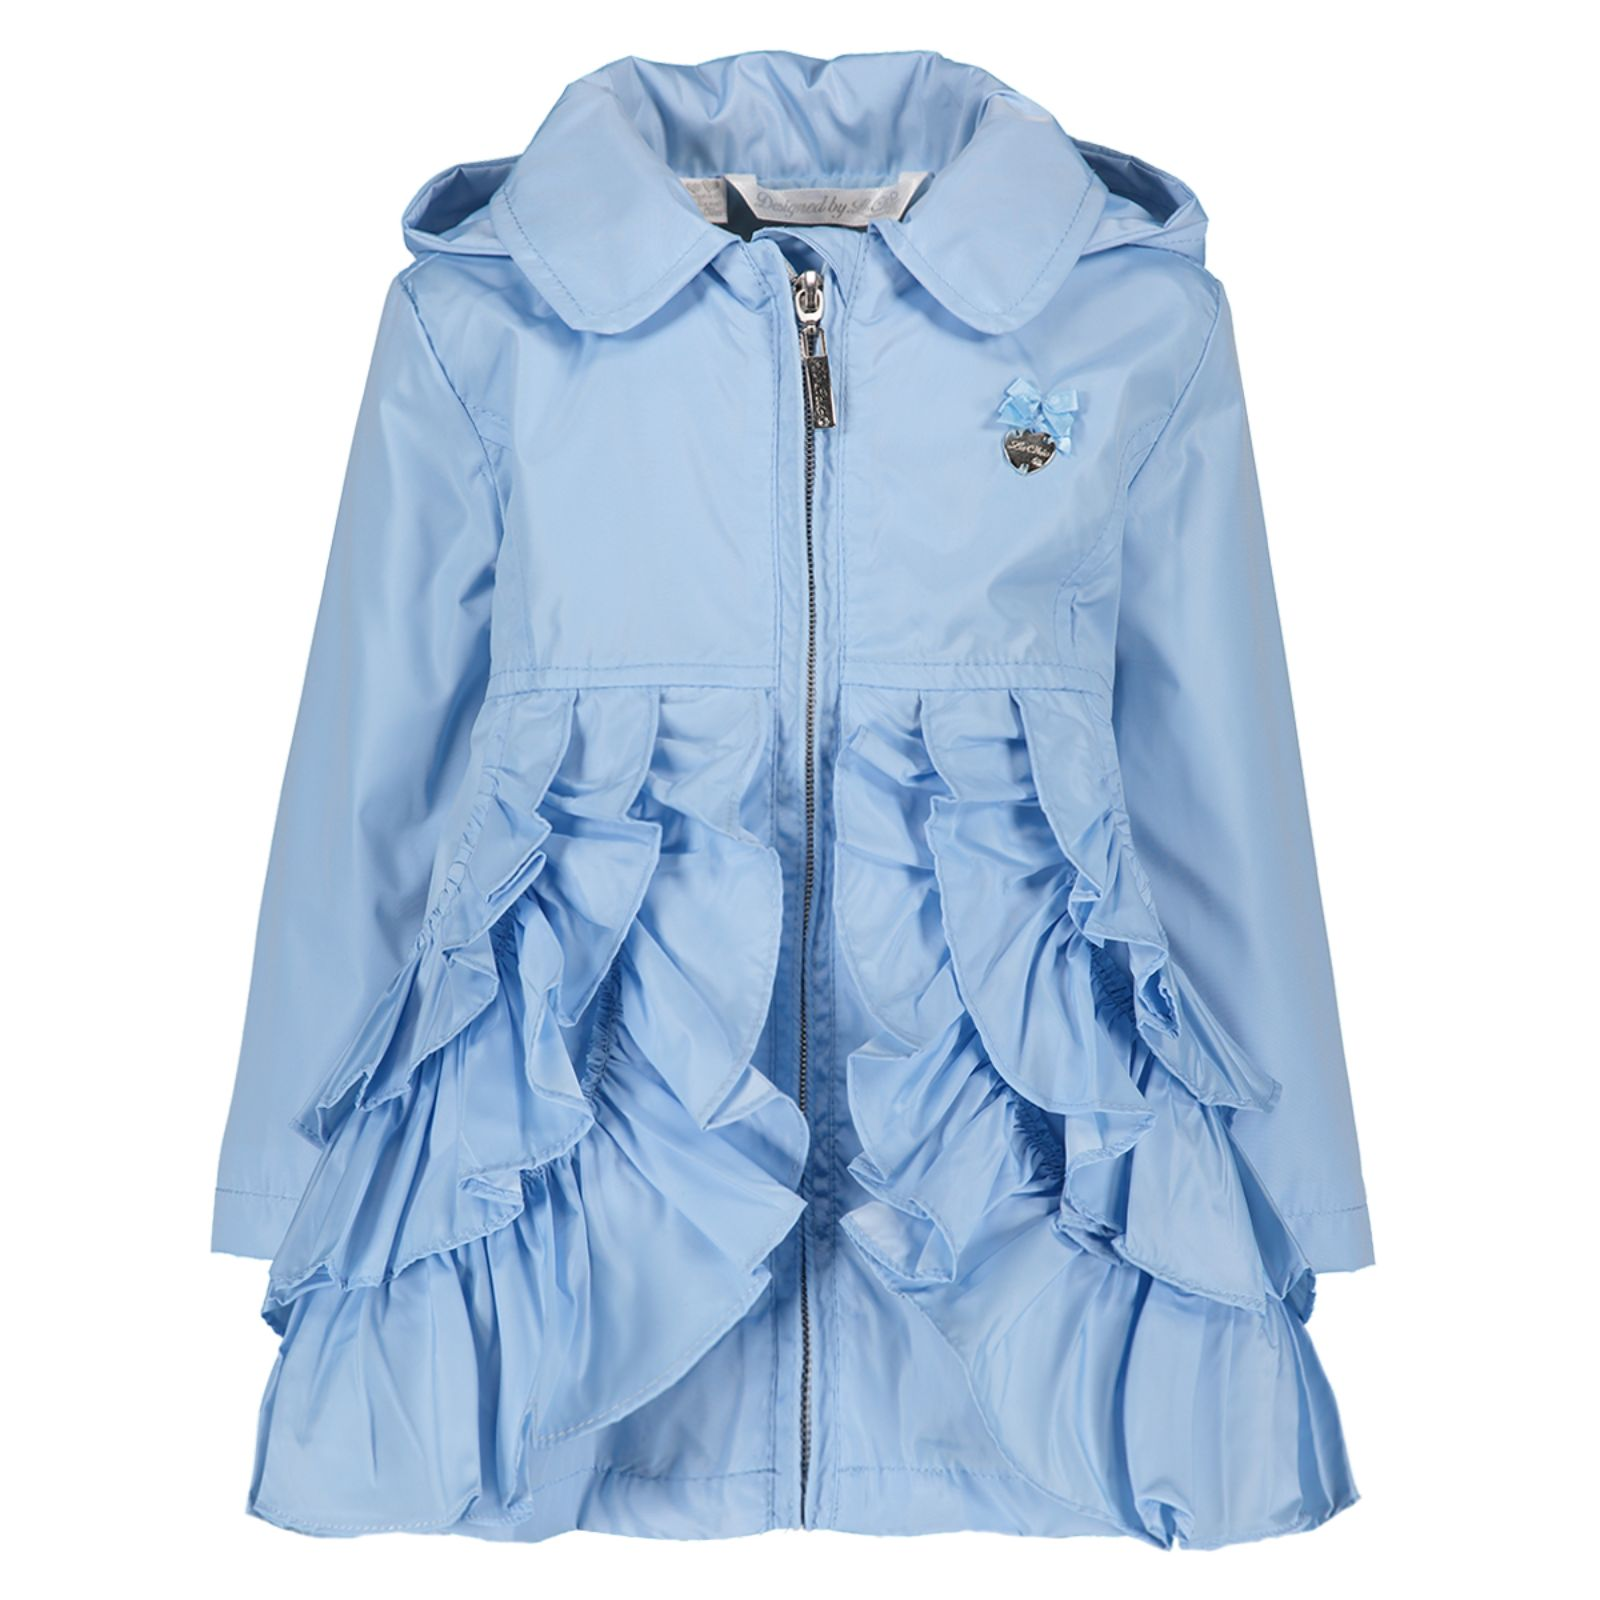 3407cabbb138 Le Chic Baby Girls Blue Ruffle Coat - little Boppers